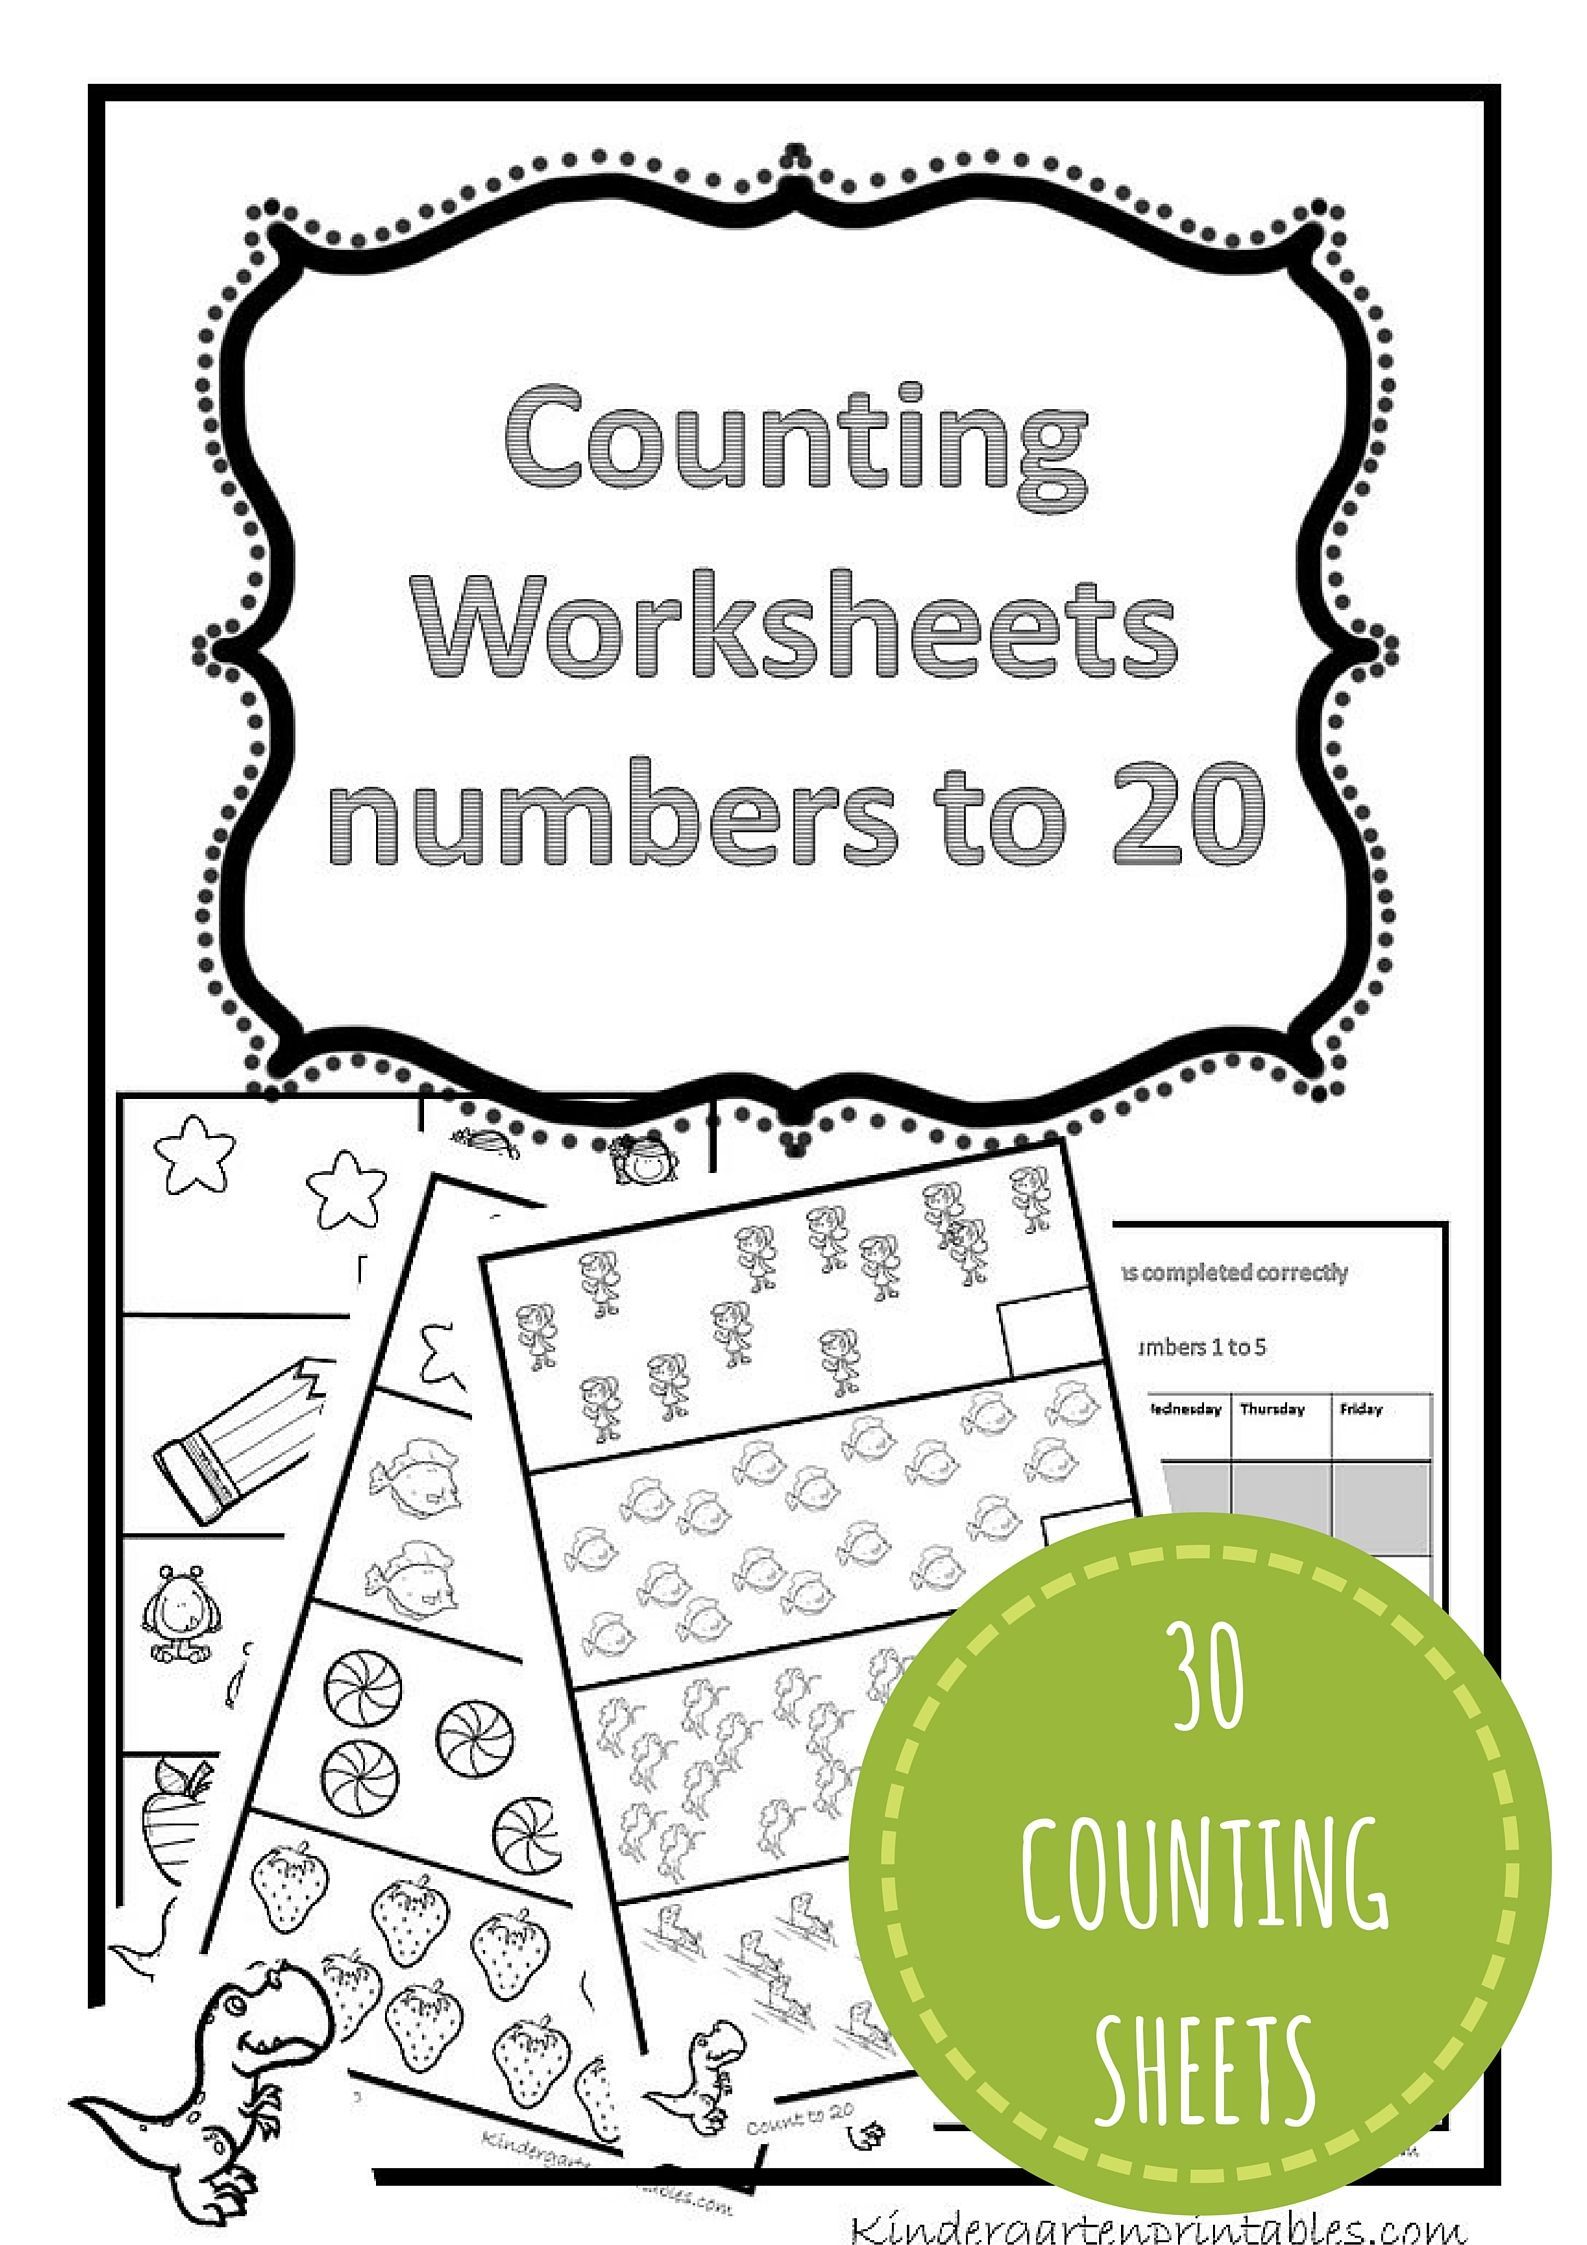 Counting Worksheets 1 20 Free Printable Workbook Counting